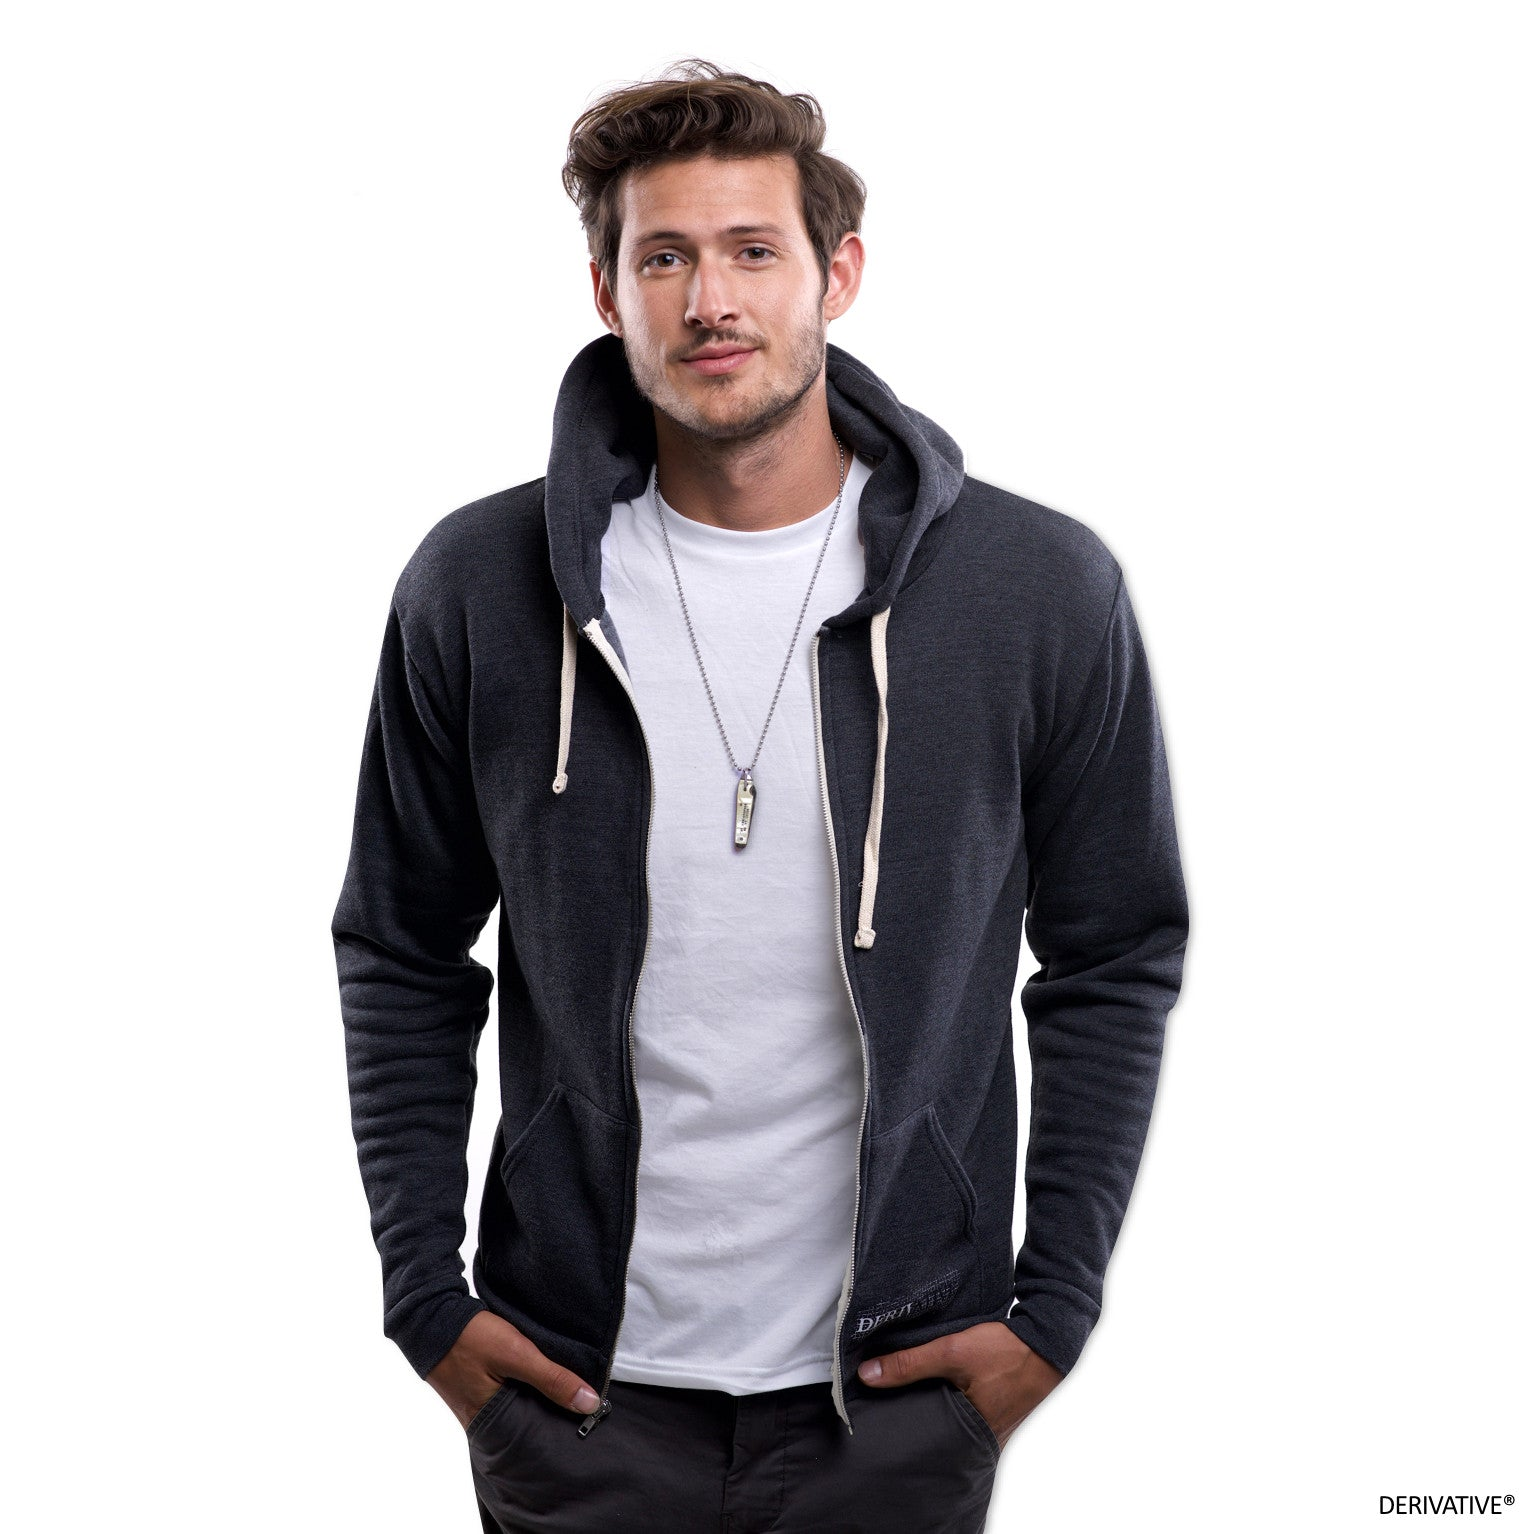 eco friendly hoodie t-shirt & hoodie, cameron kolbo from mtv ayto second chances modeling derivative recycled clothing